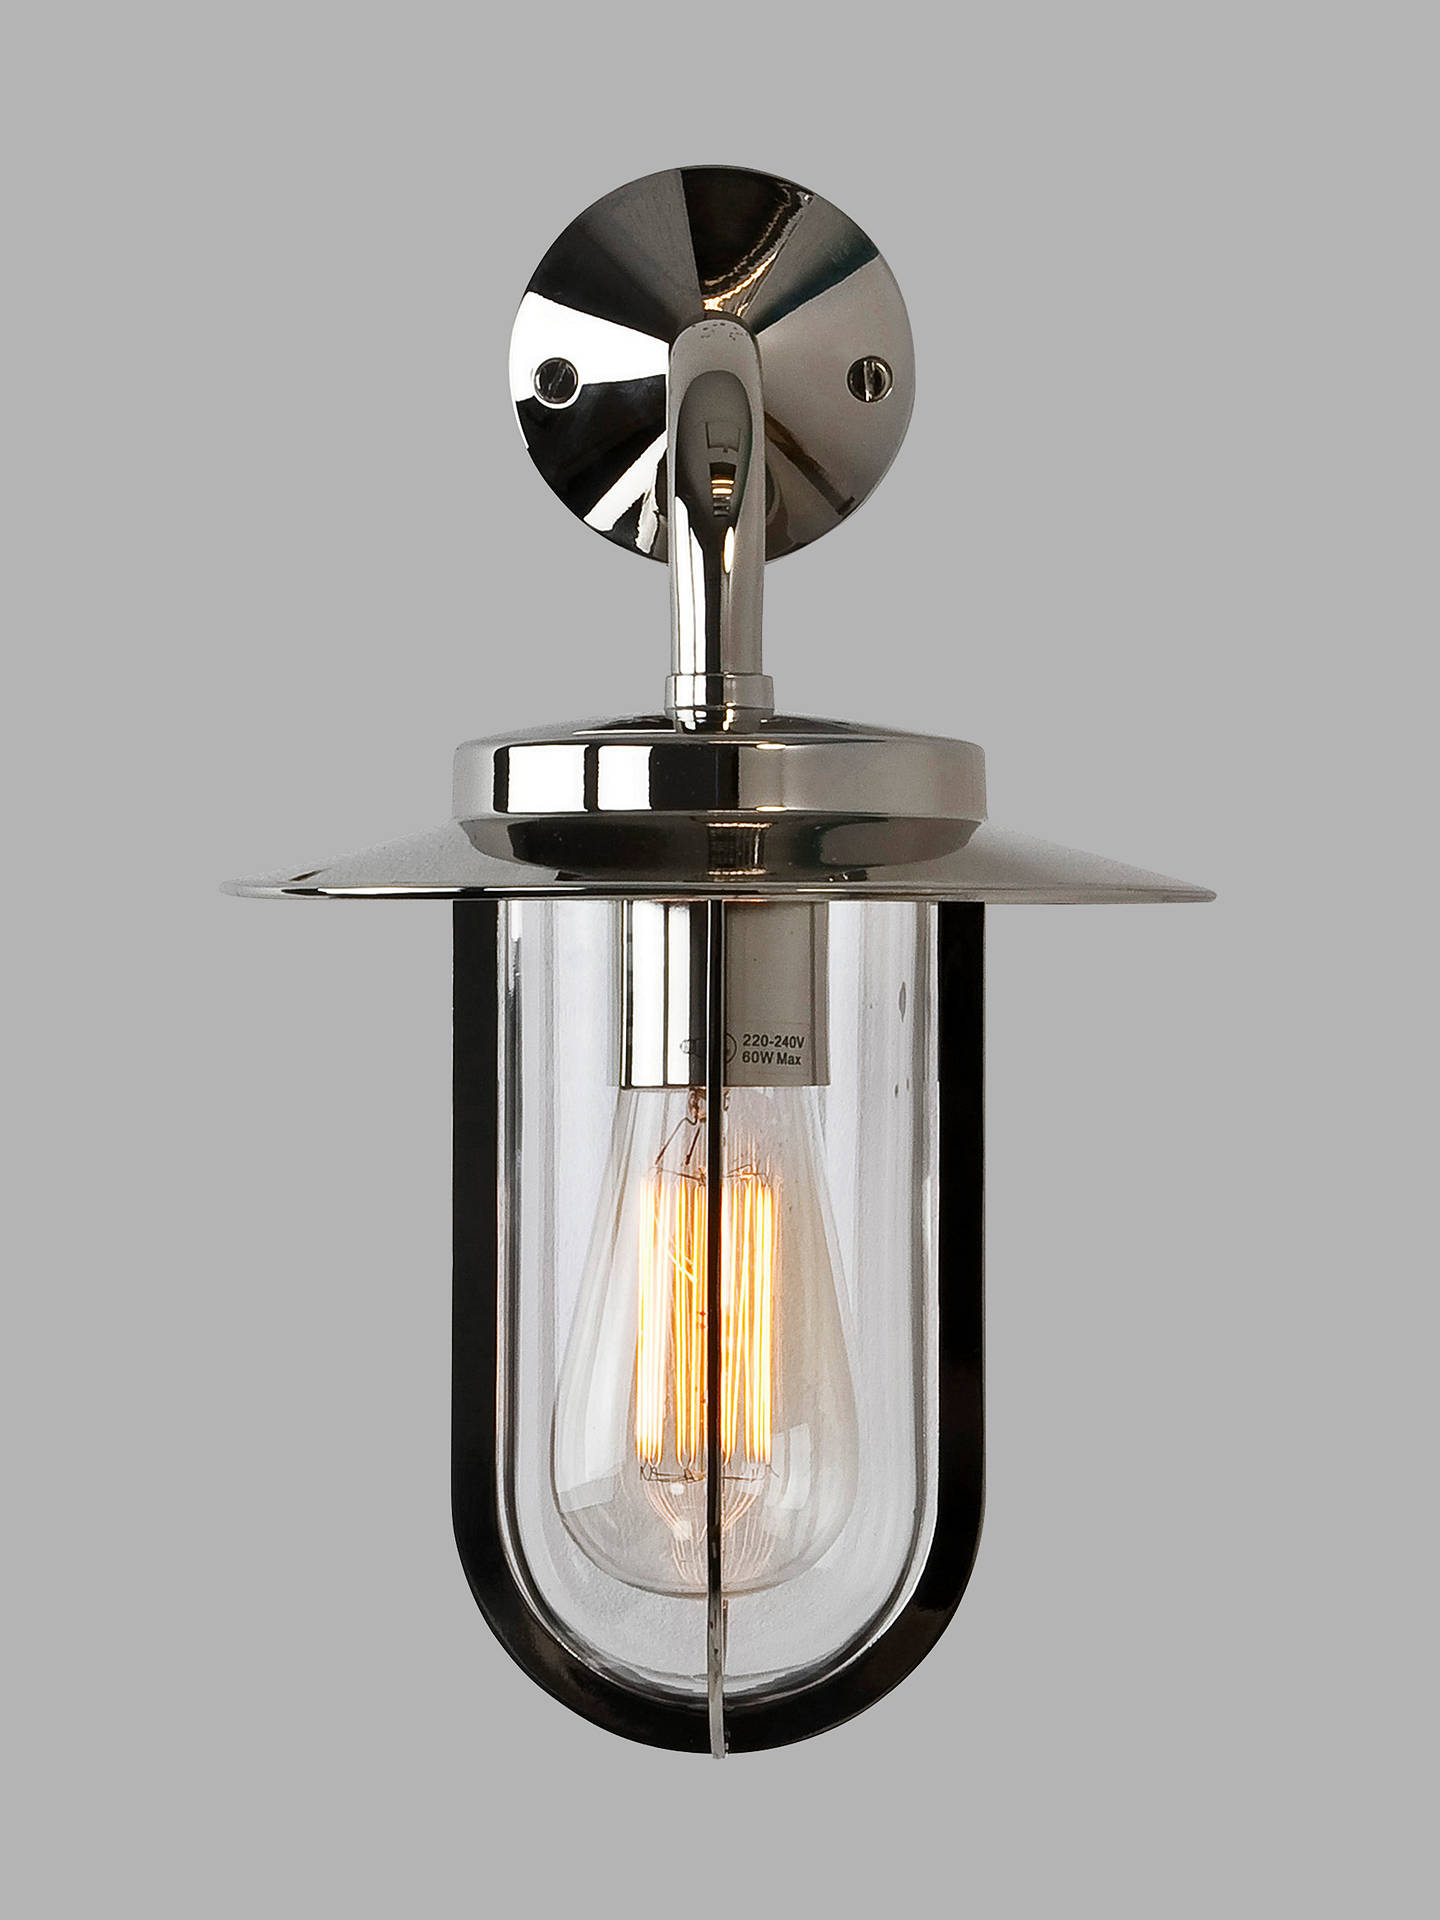 Buy Astro Montparnasse Outdoor Lantern Wall Light, Polished Nickel Online at johnlewis.com